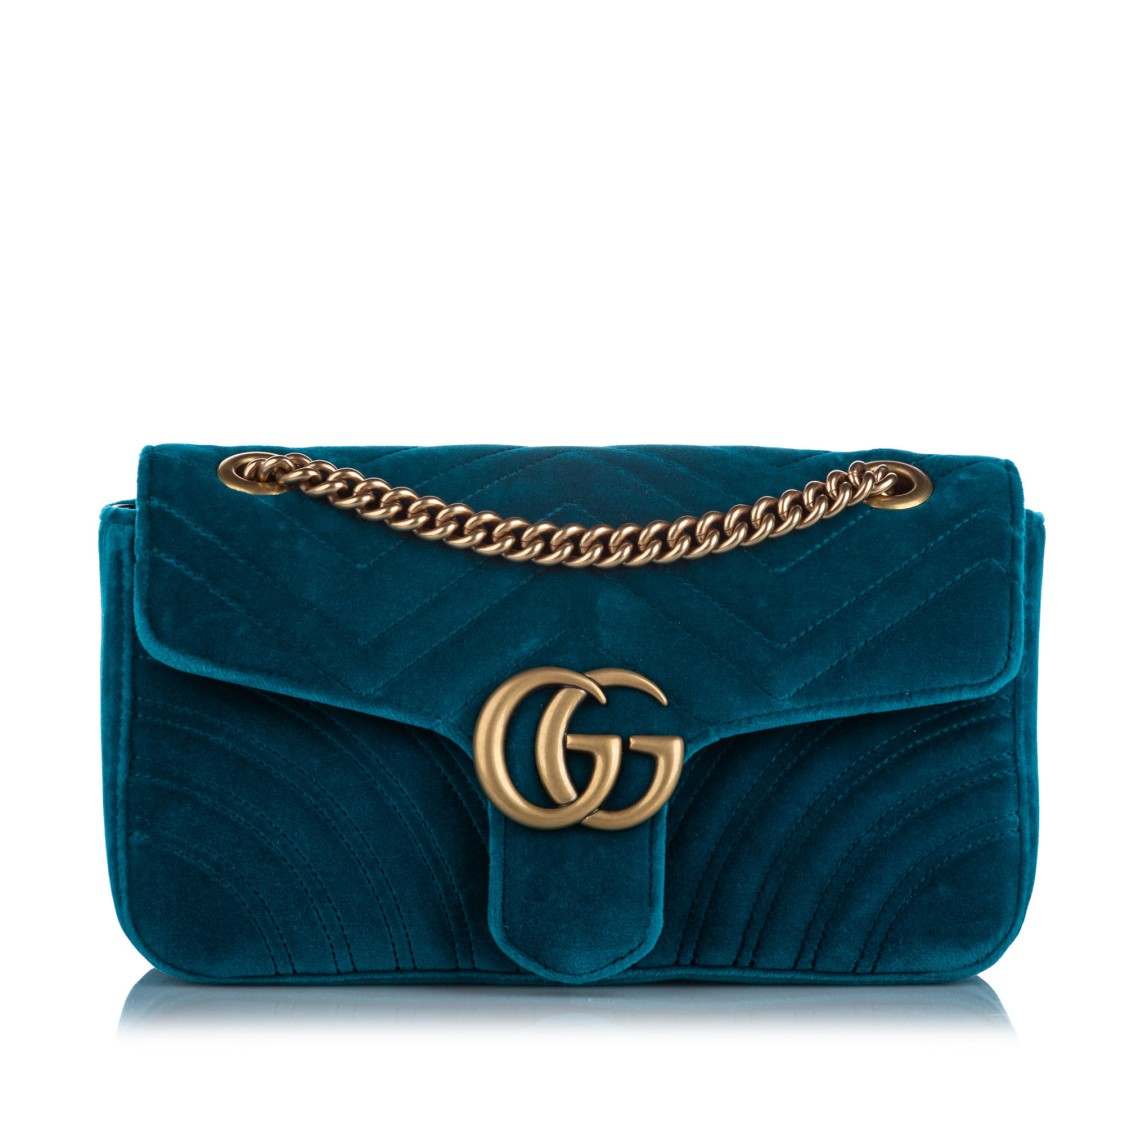 Gucci SMALL GG MARMONT VELVET SHOULDER BAG